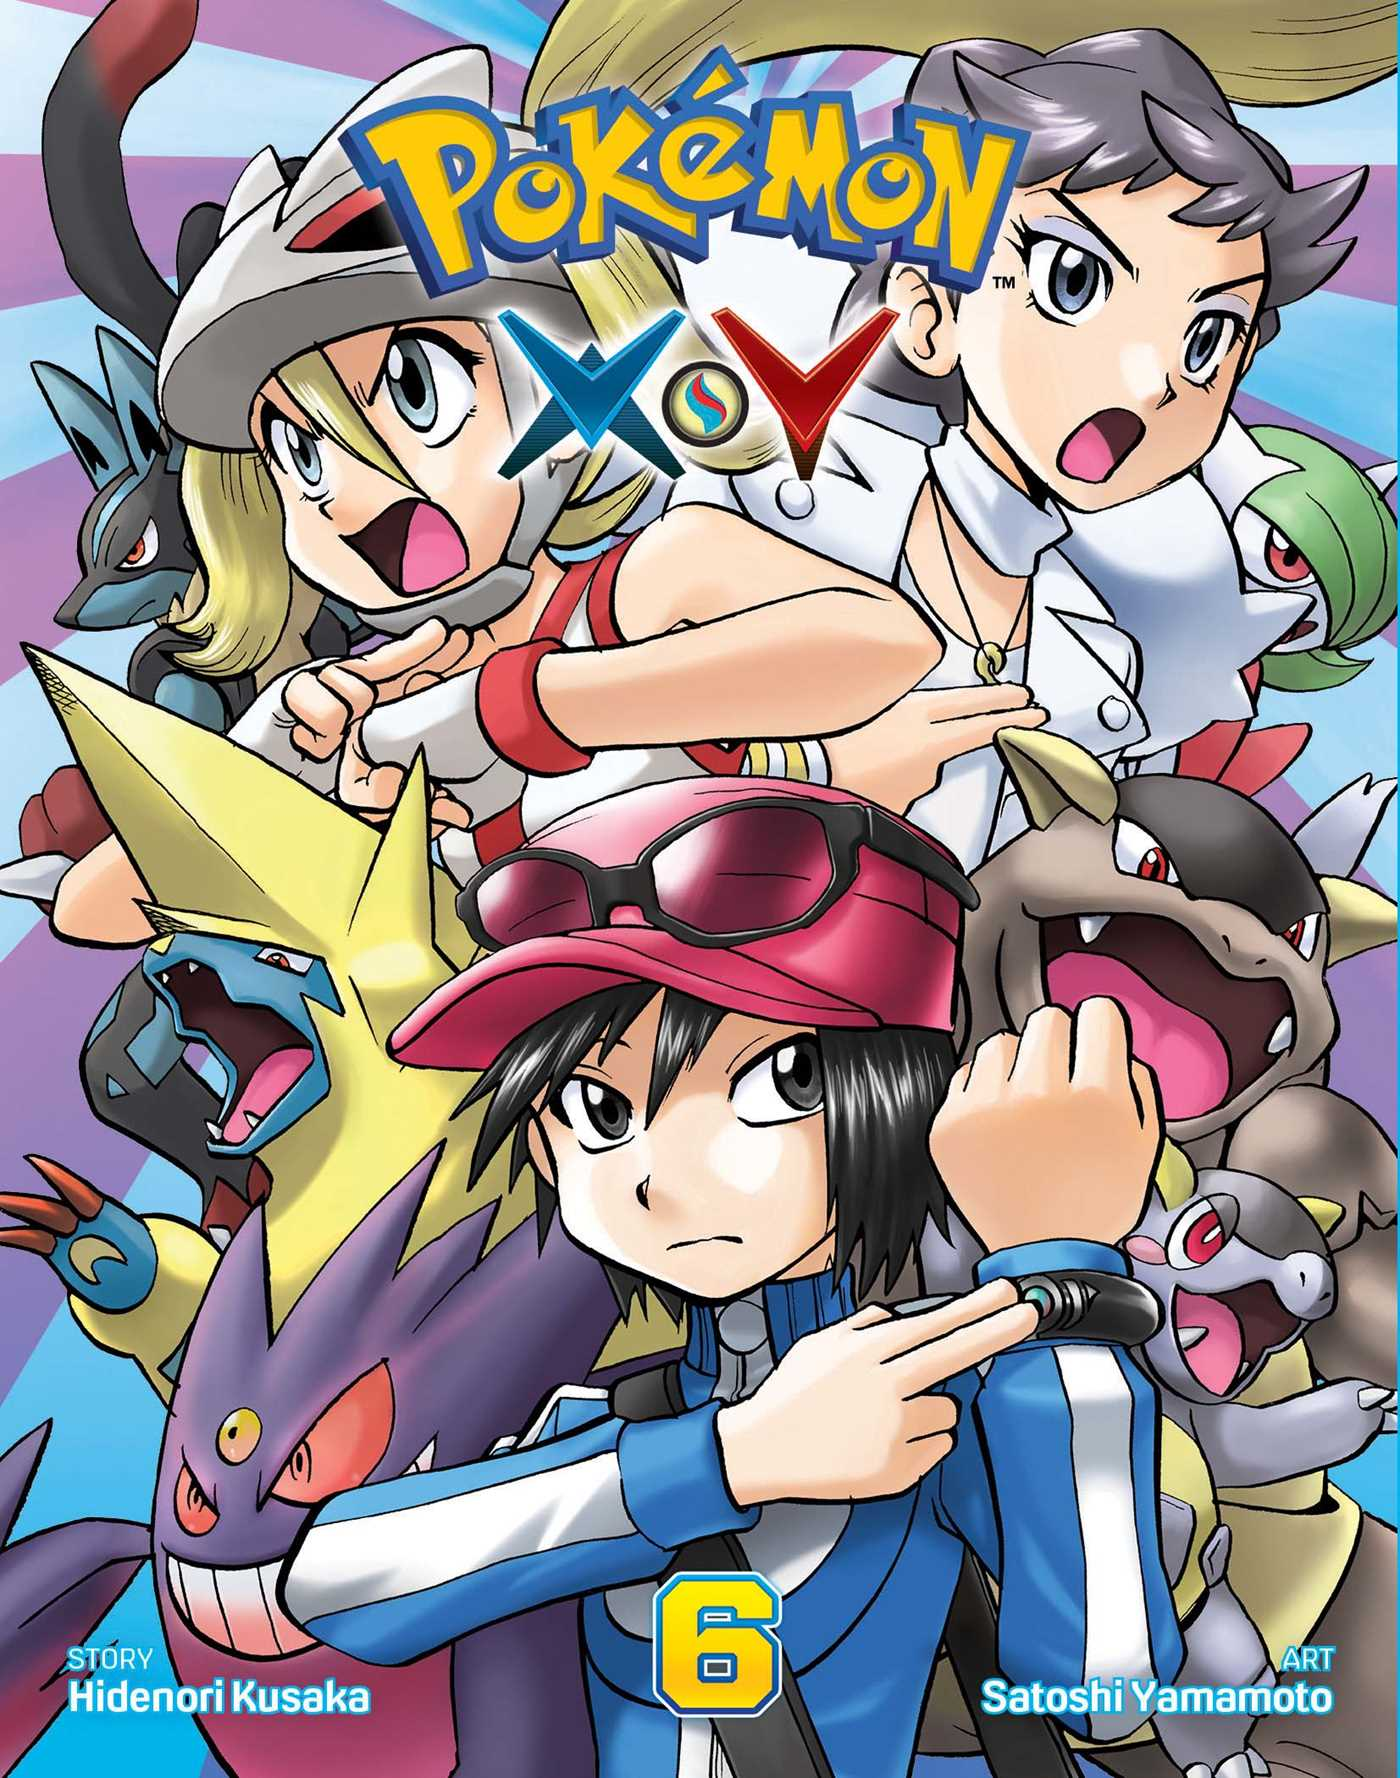 Pokemon And Y Anime Characters Names : Pok�mon y vol book by hidenori kusaka satoshi